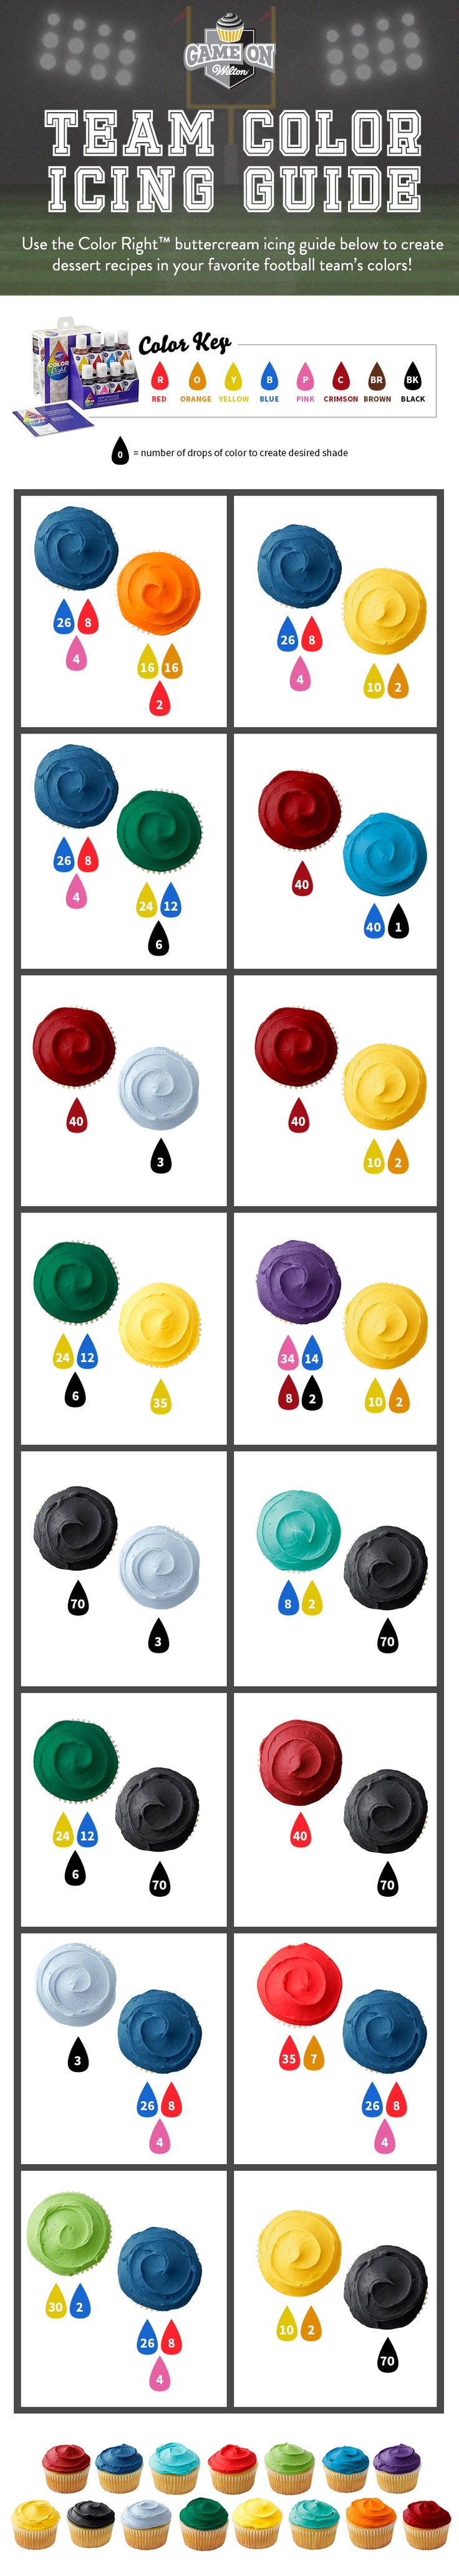 Americolor Gel Paste Color Chart Images - Free Any Chart Examples